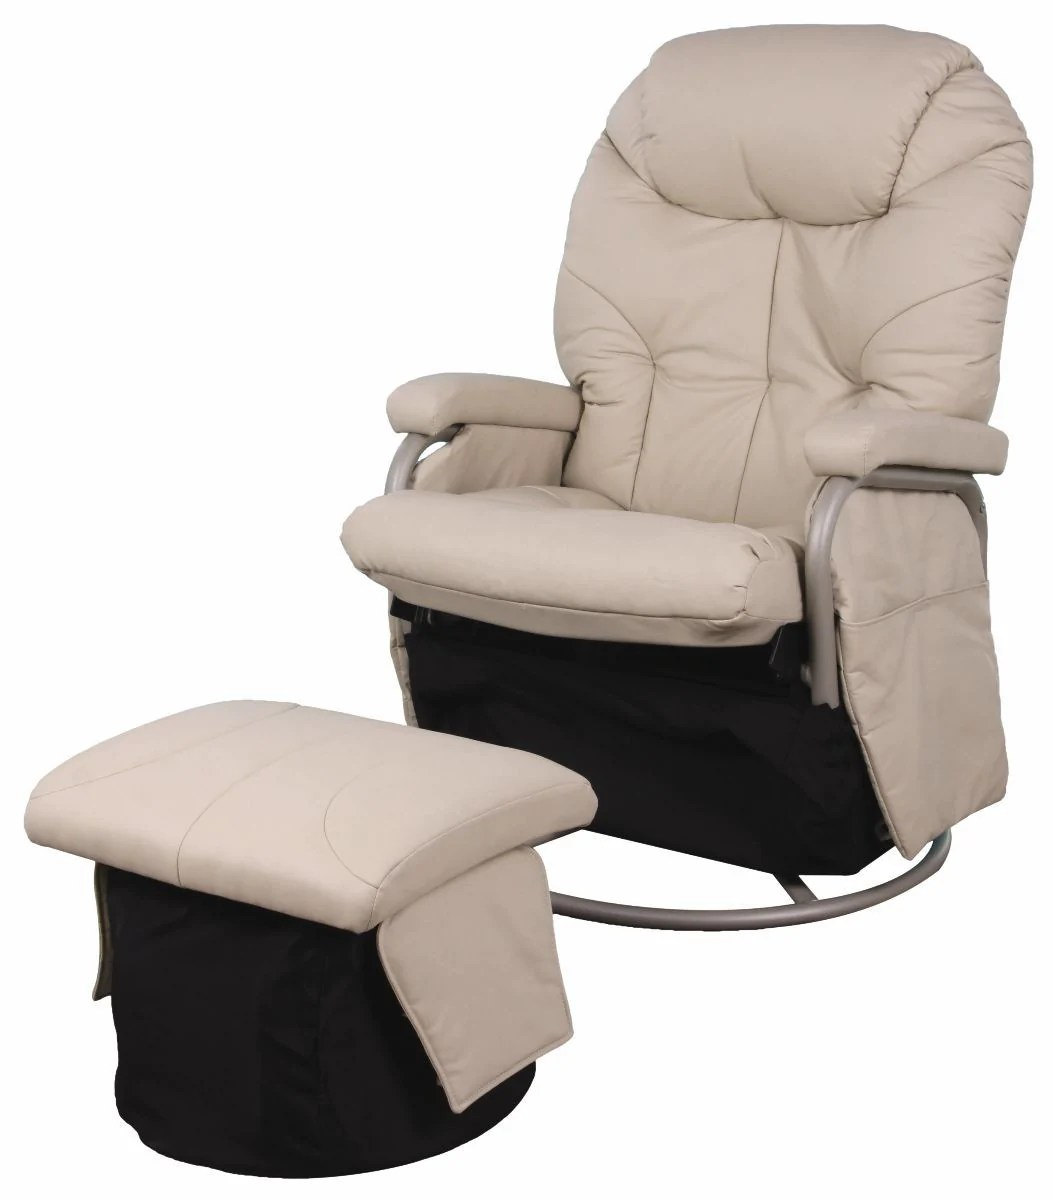 childcare glider rocker chair ottoman nice office reddit beba baby hire high for in melbourne